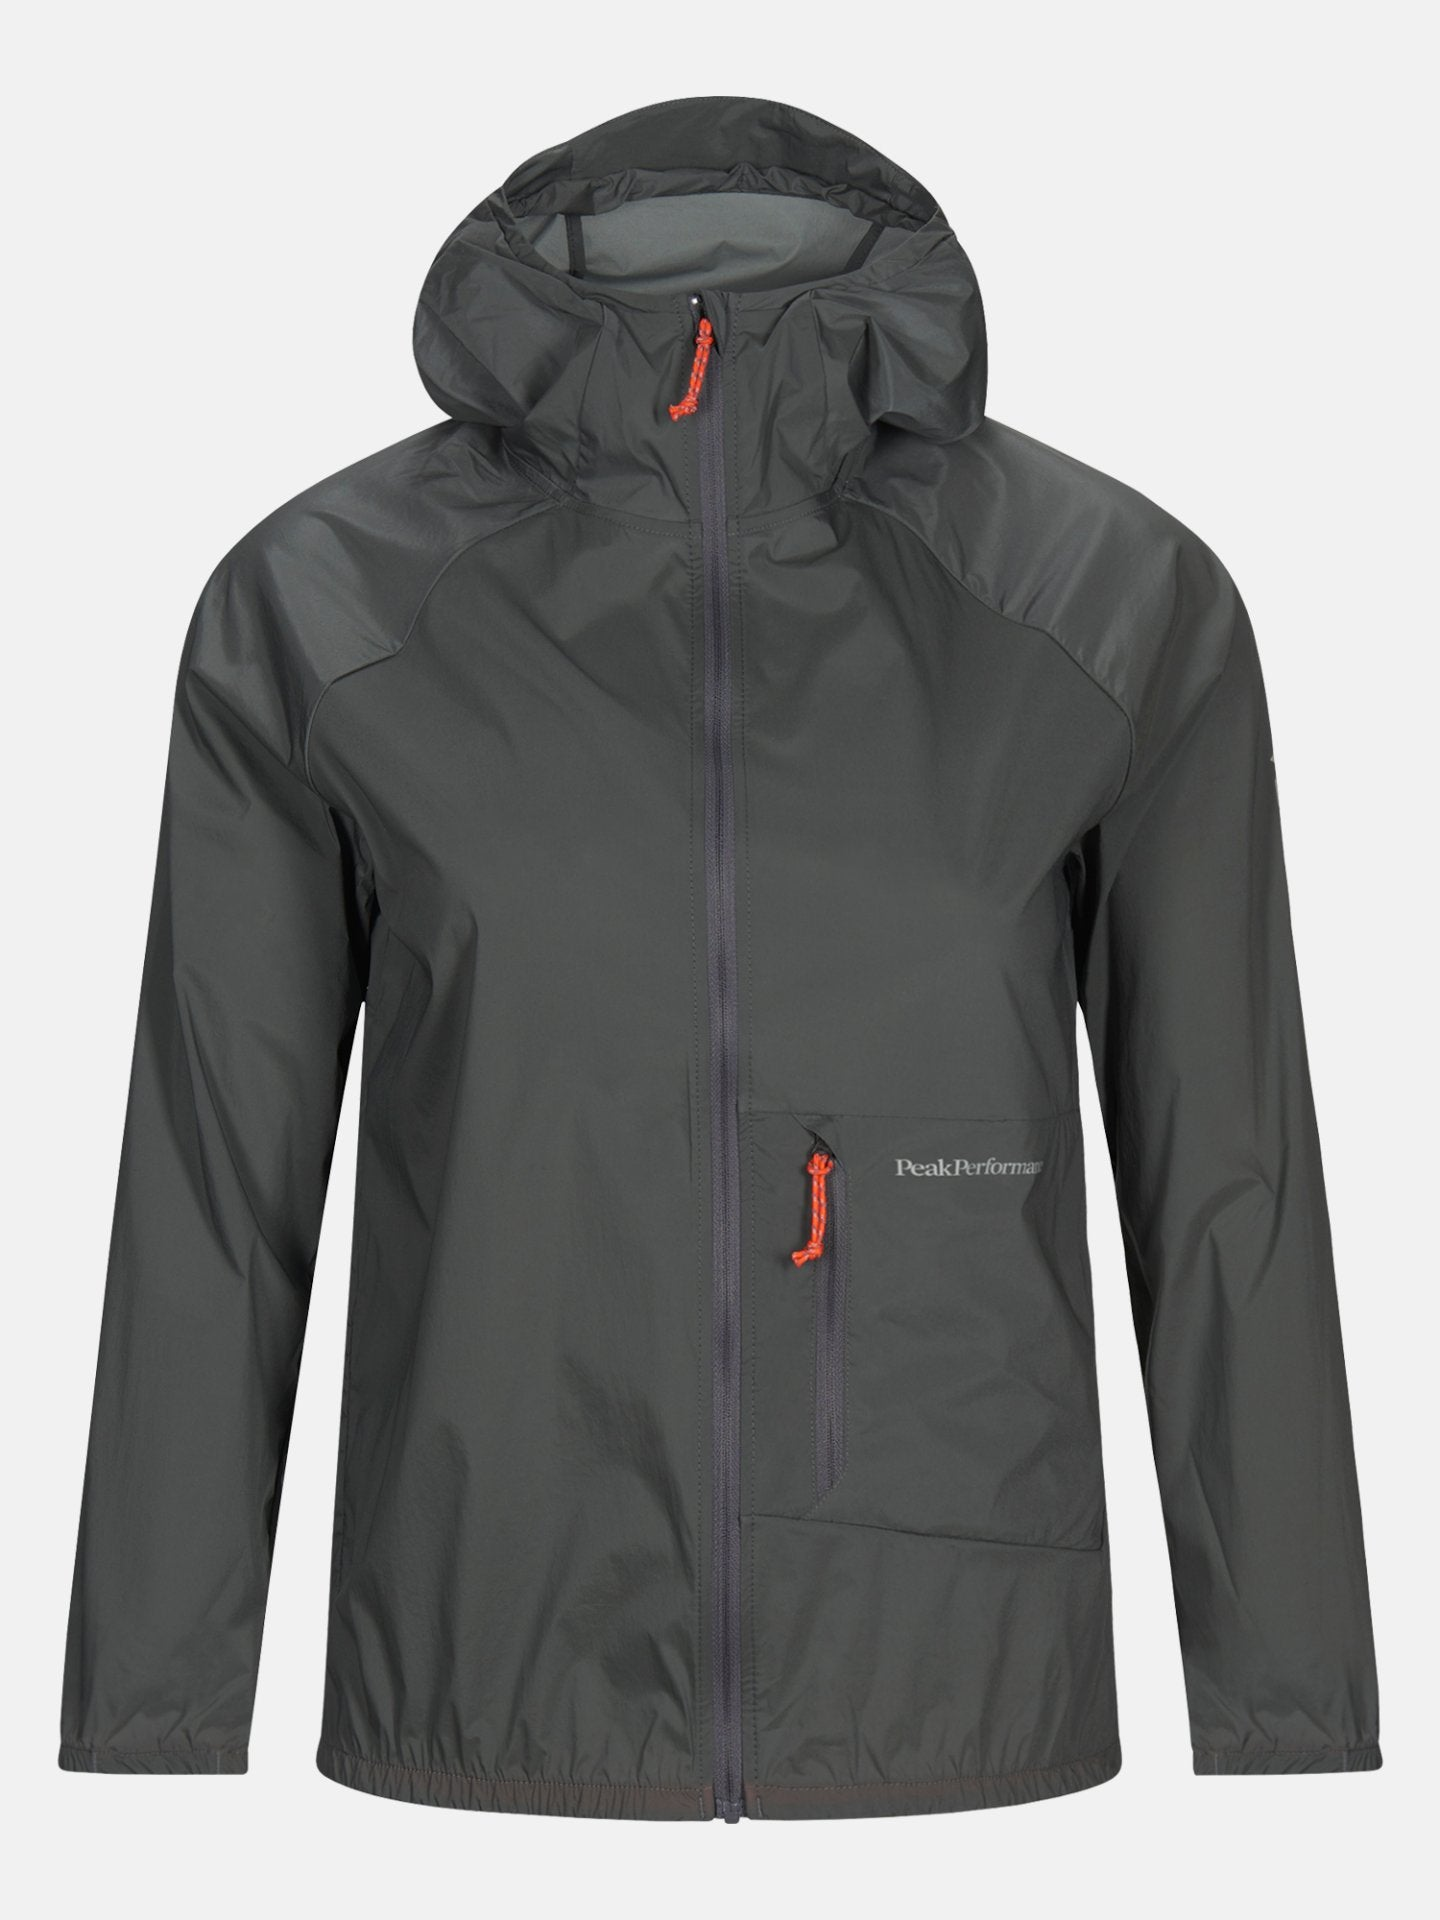 Vislight Windjacket Women